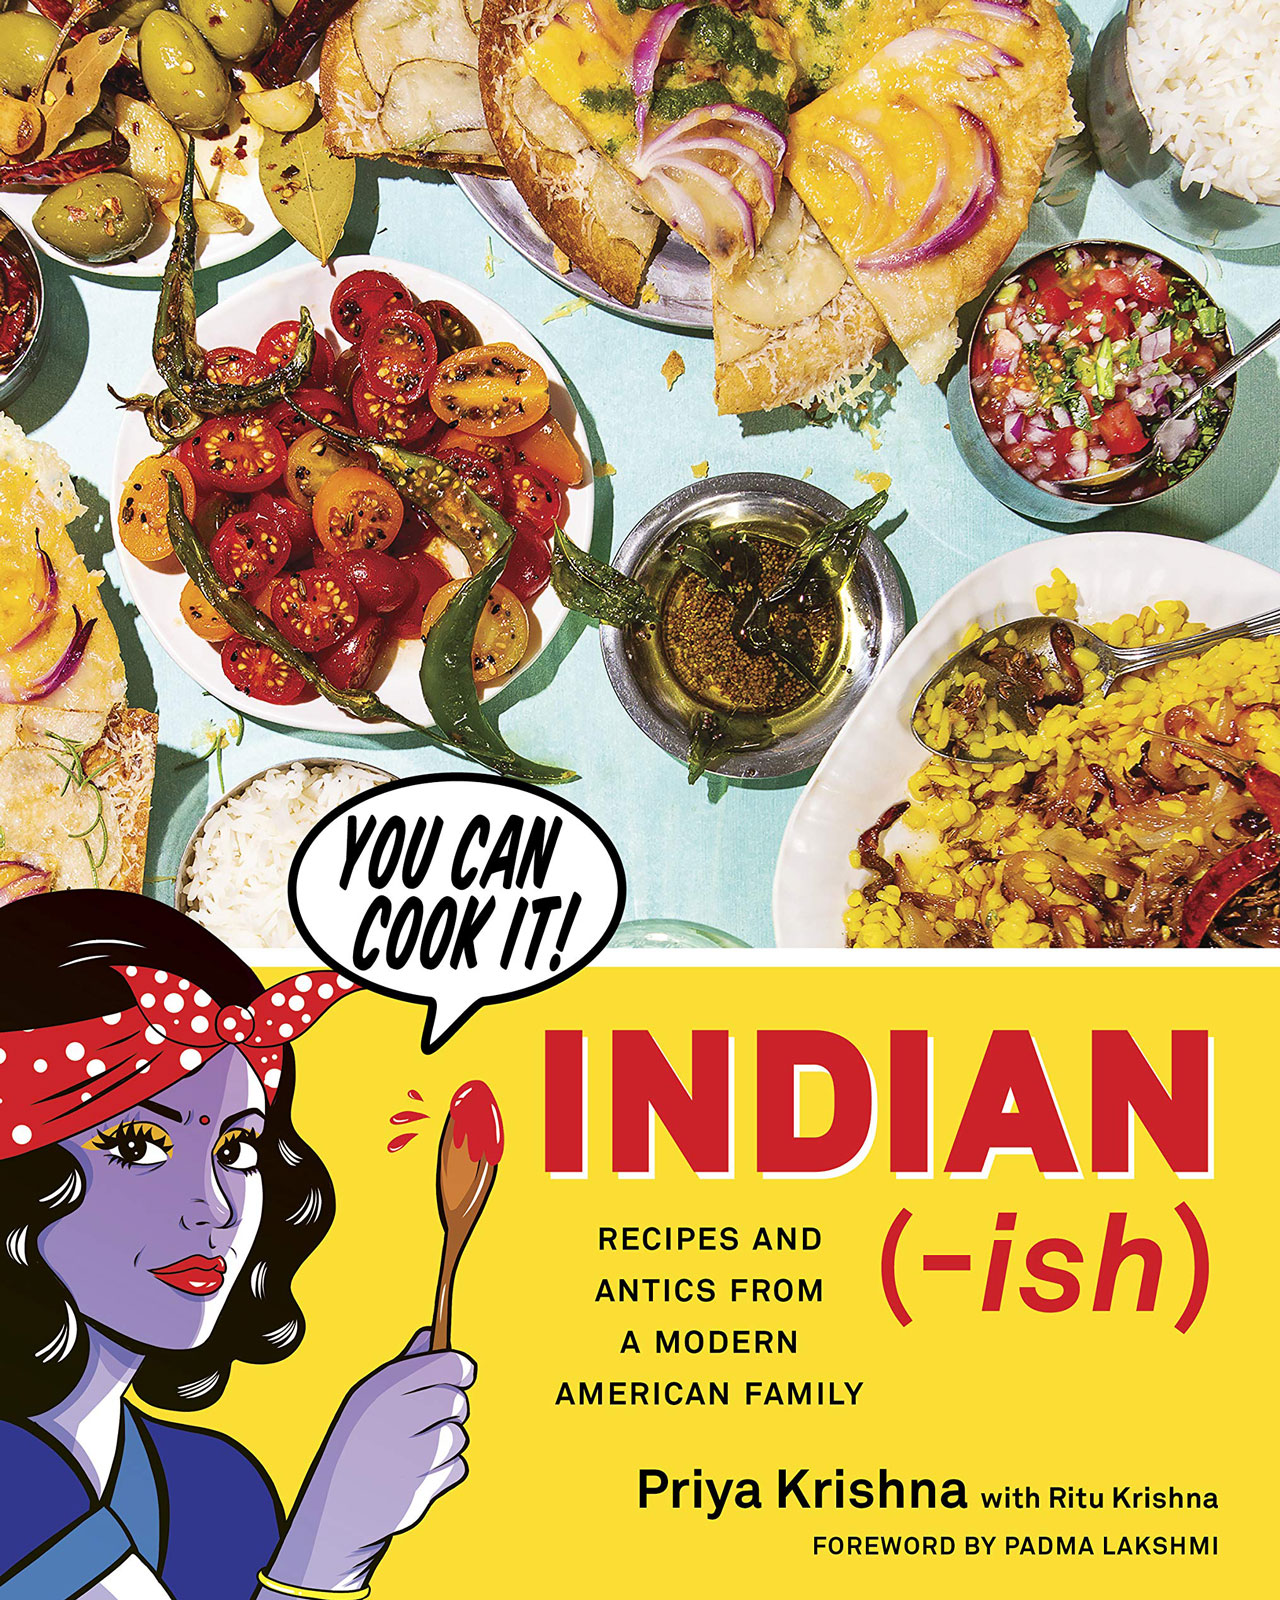 A Mother-Daughter Duo Teaches Indian Cooking for Amateurs